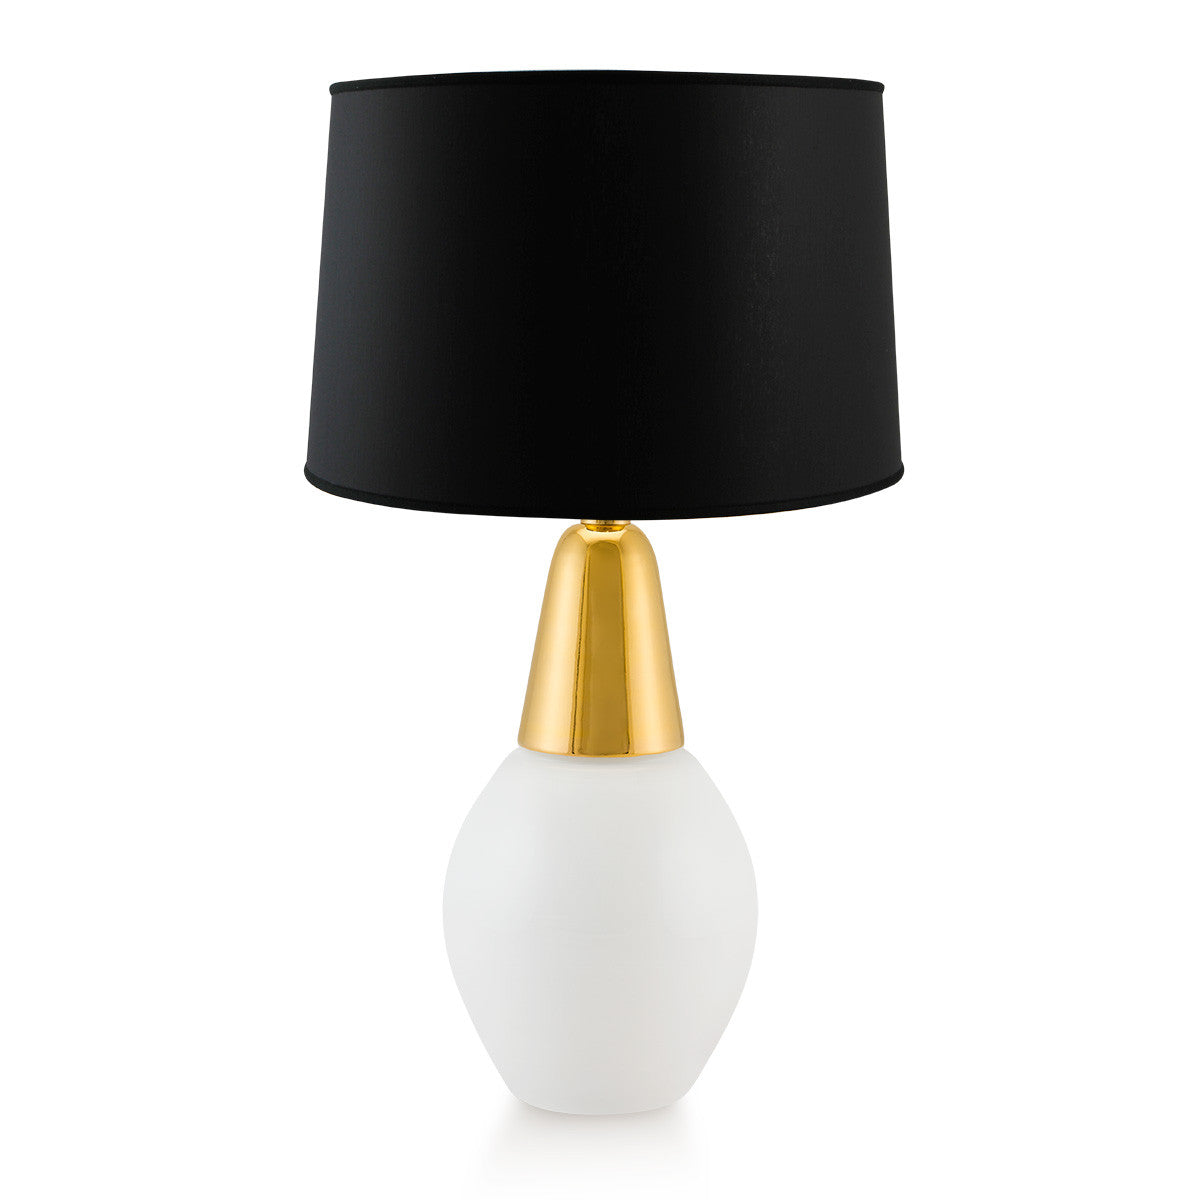 Drop ceramic table lamp white and gold